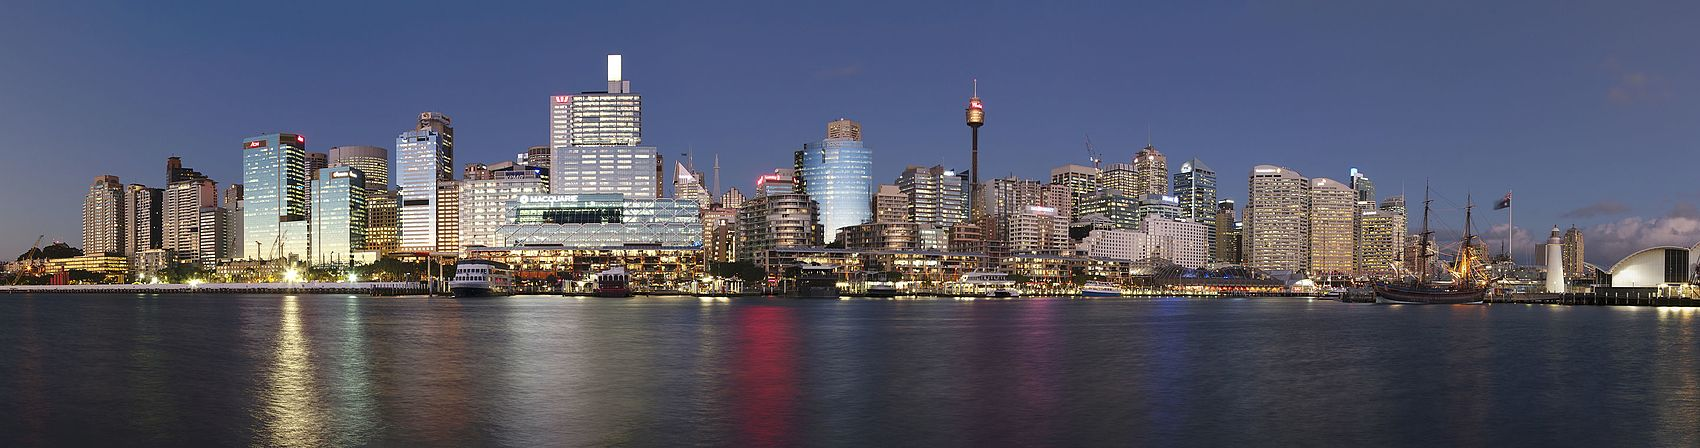 Sydney from Darling Harbour